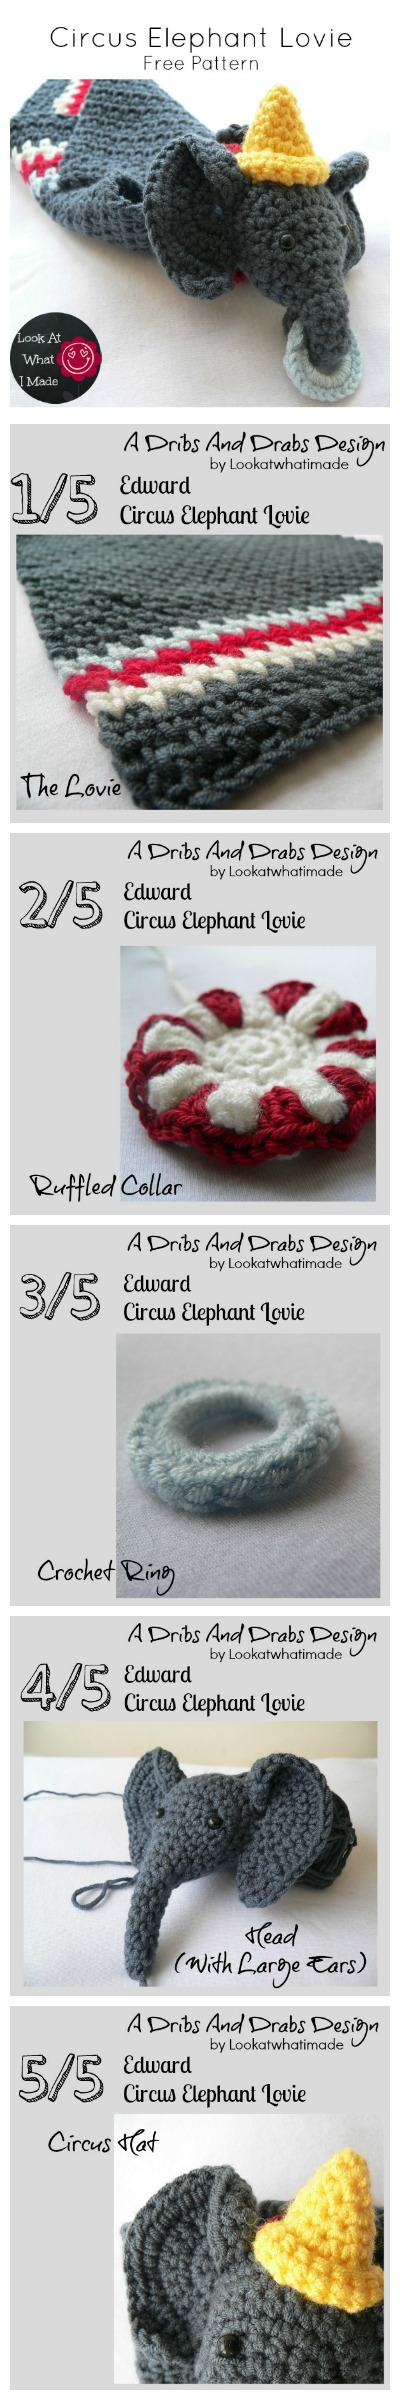 Crochet Blanket Circus Elephant Lovie